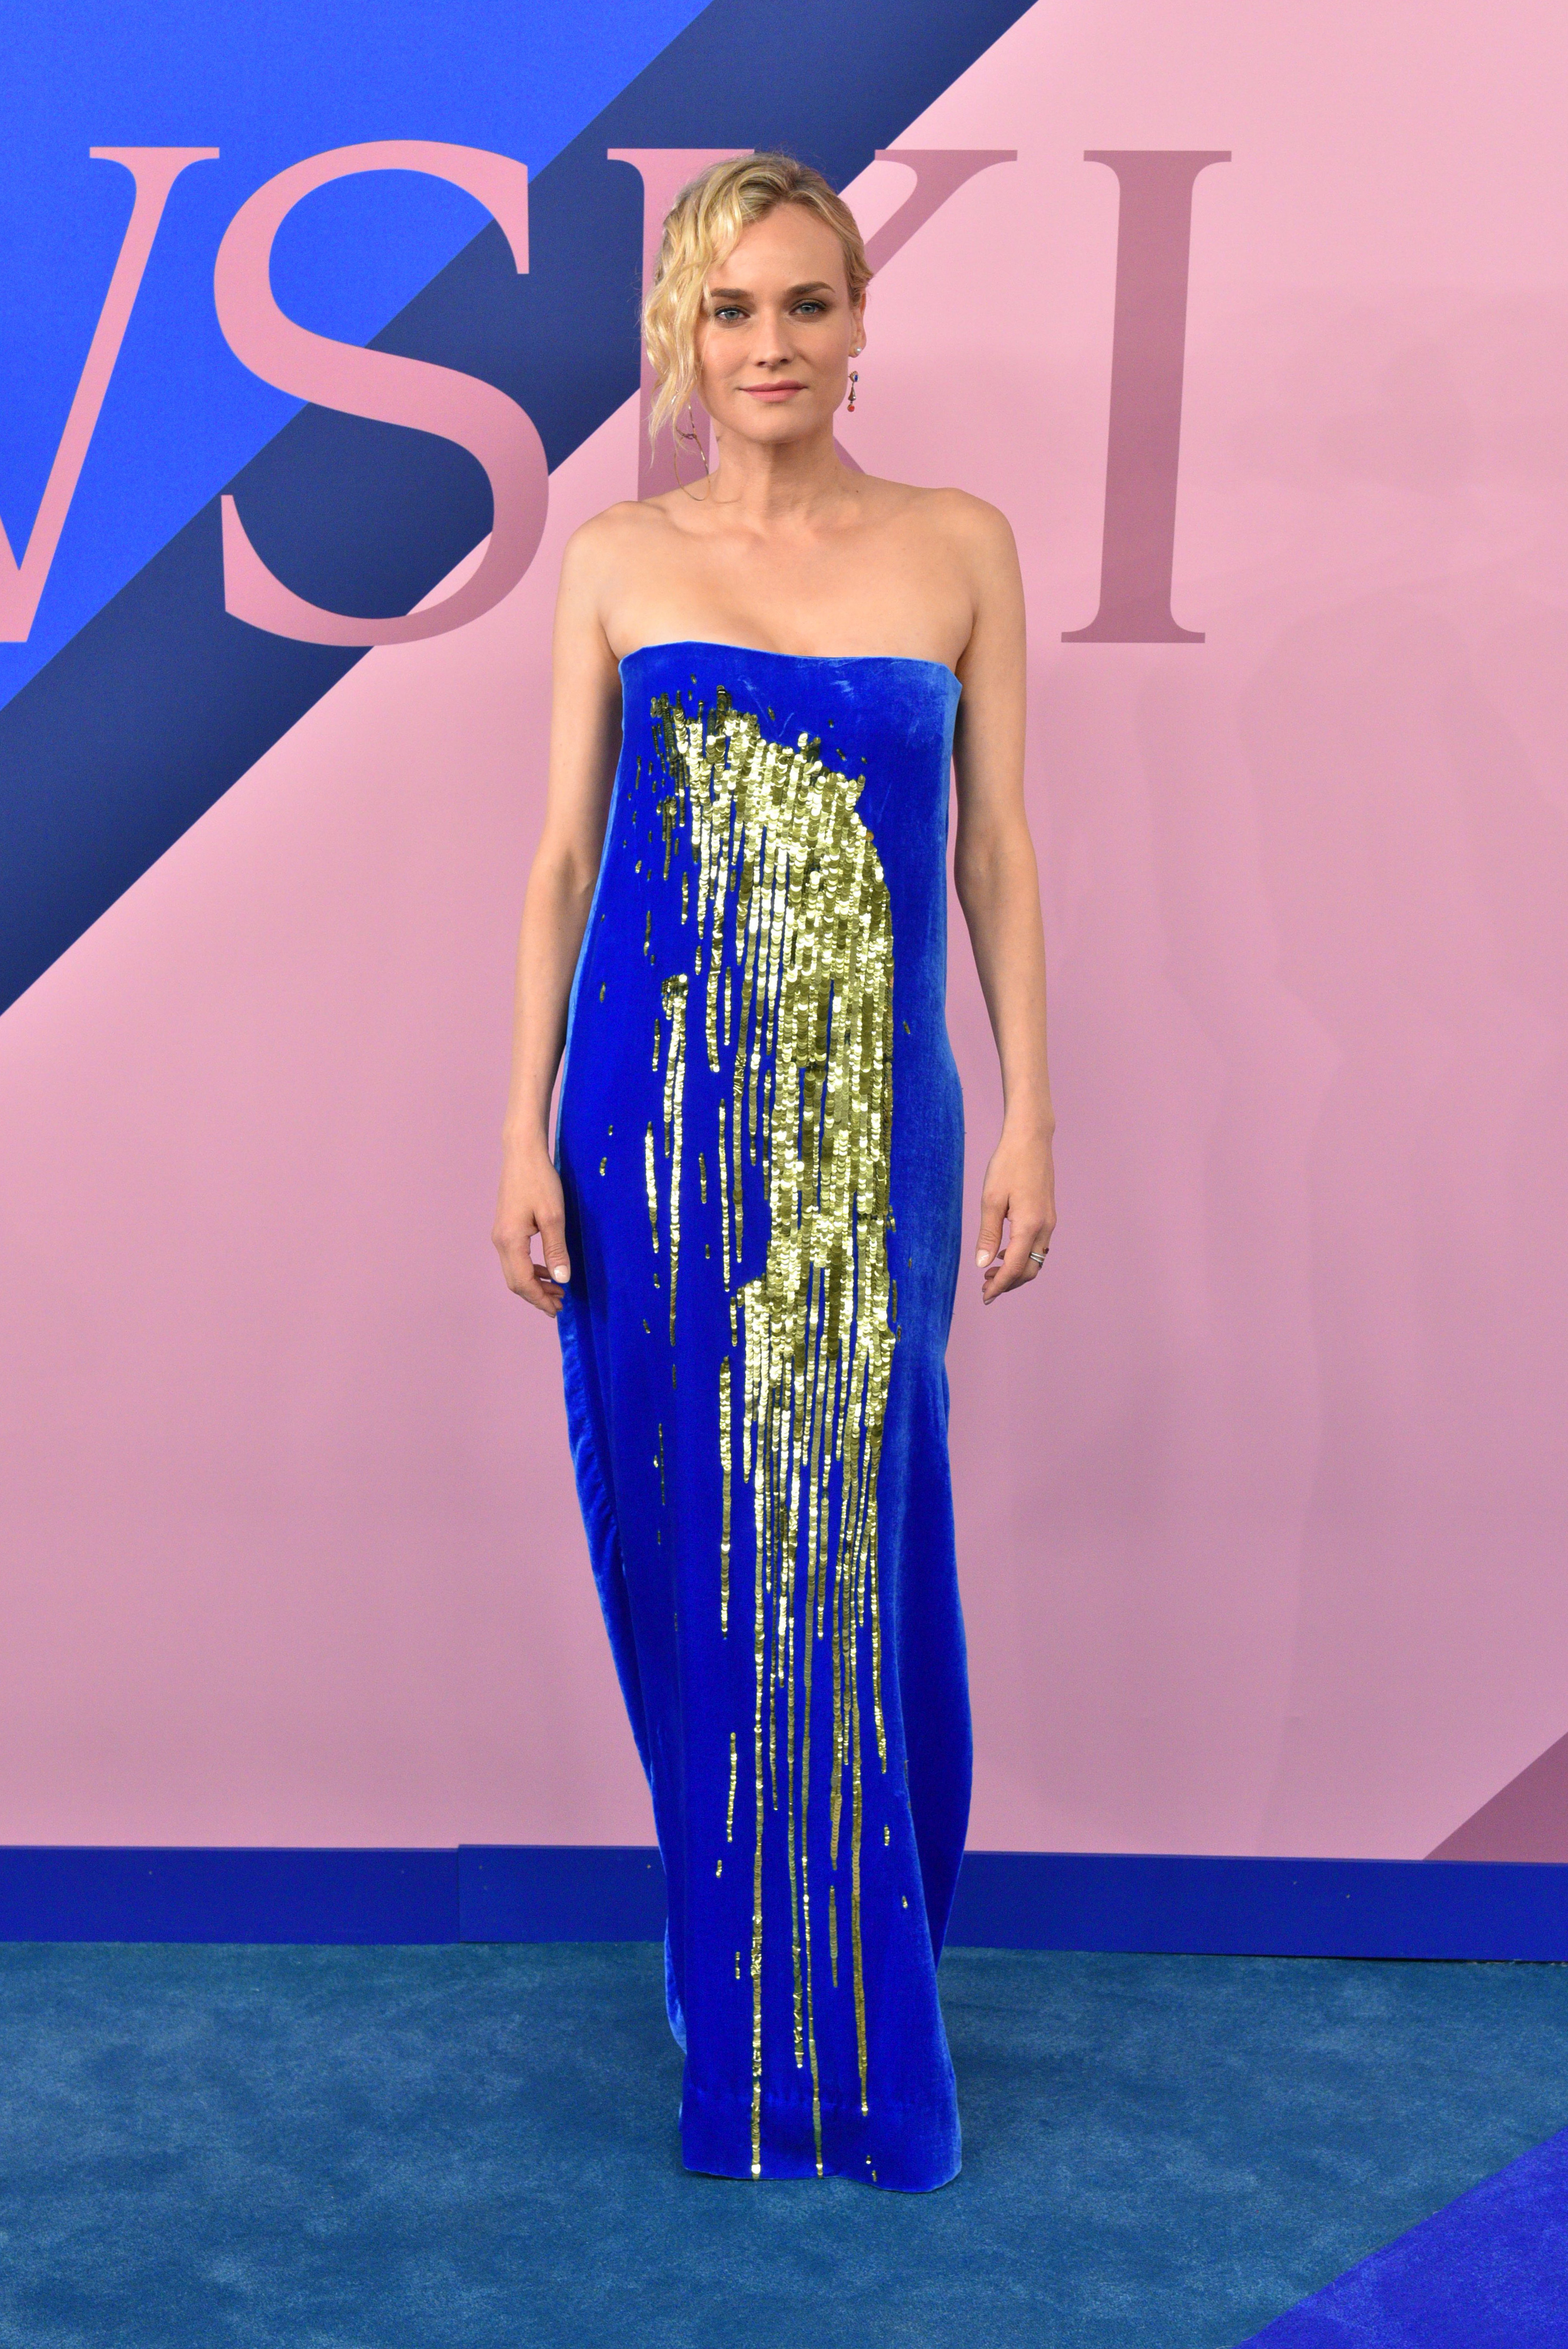 Diane Kruger attends the CFDA Fashion Awards in New York City on June 5, 2017.